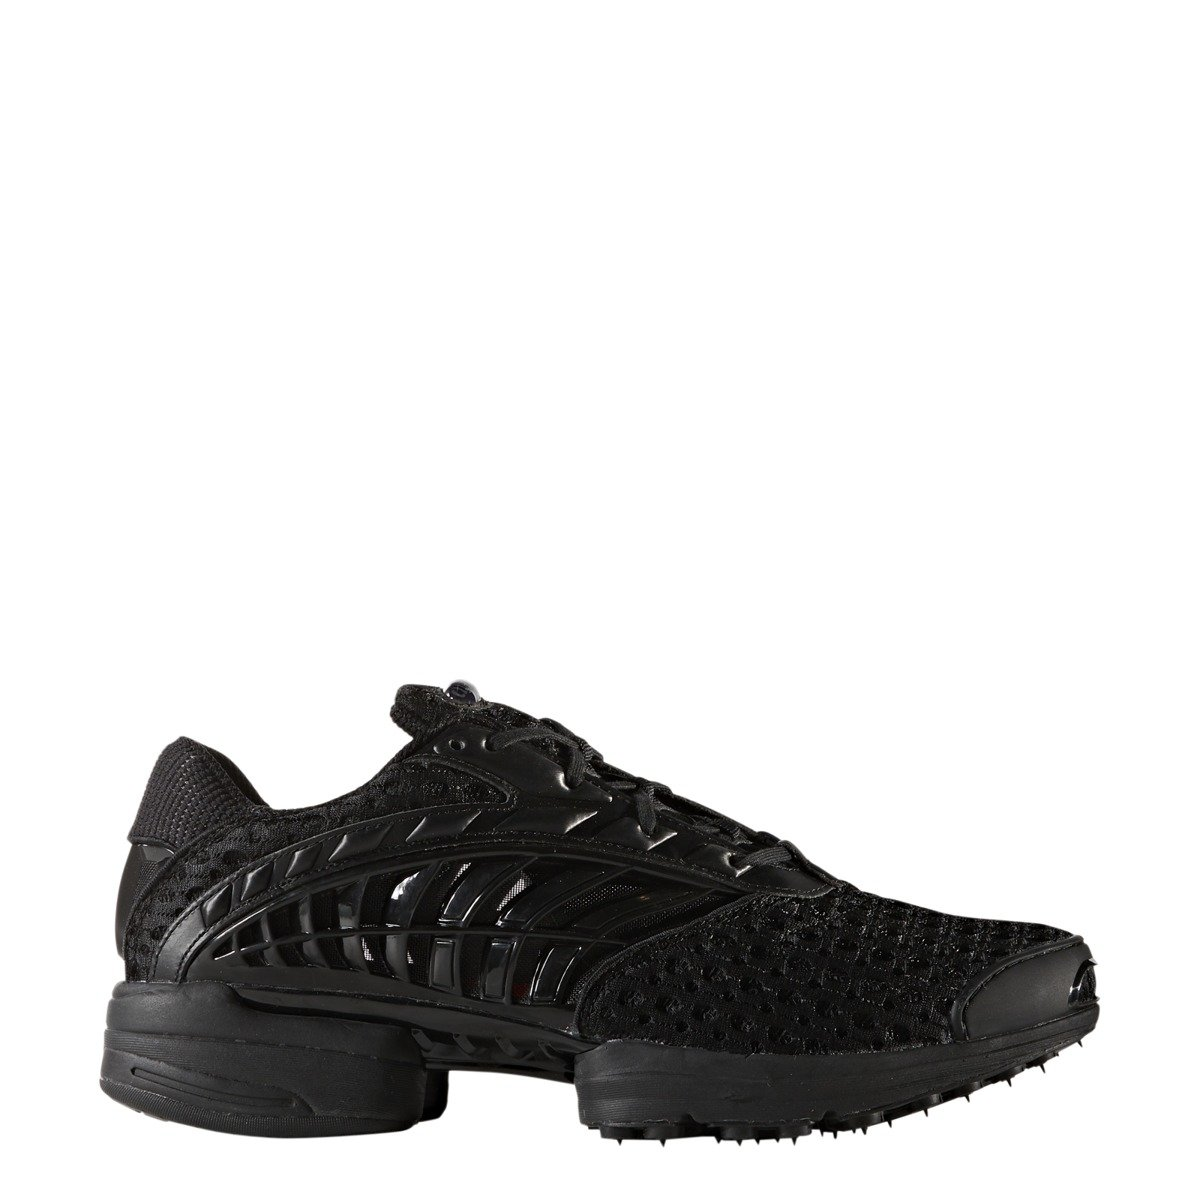 de9131b12bf Adidas Climacool 2 Shoes - BY3009